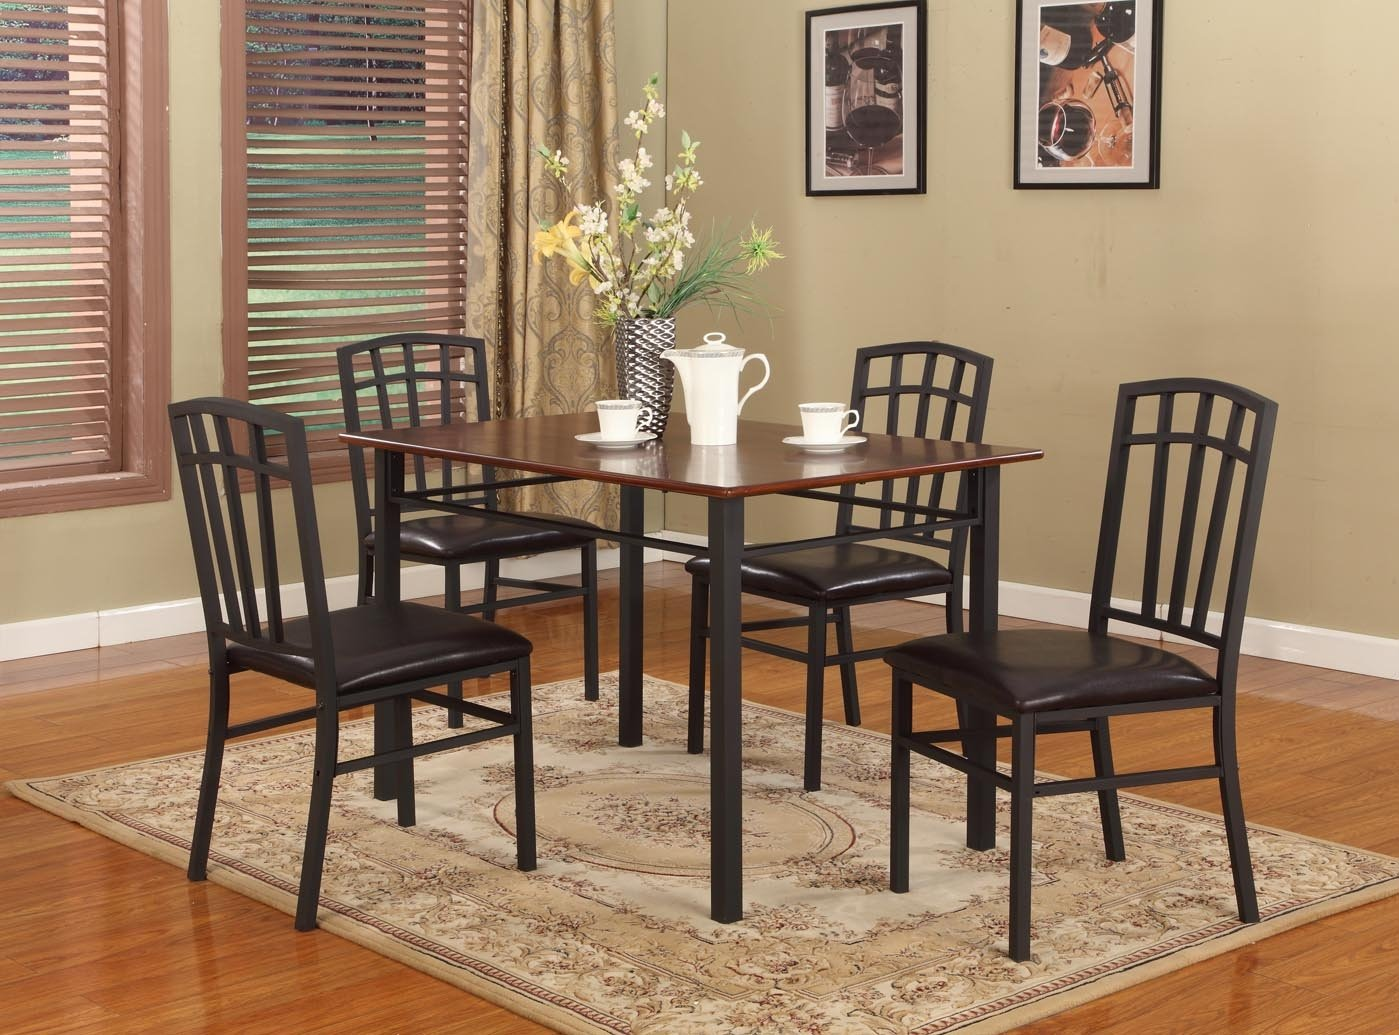 Black Metal Dining Chairs Simple Assembly Required